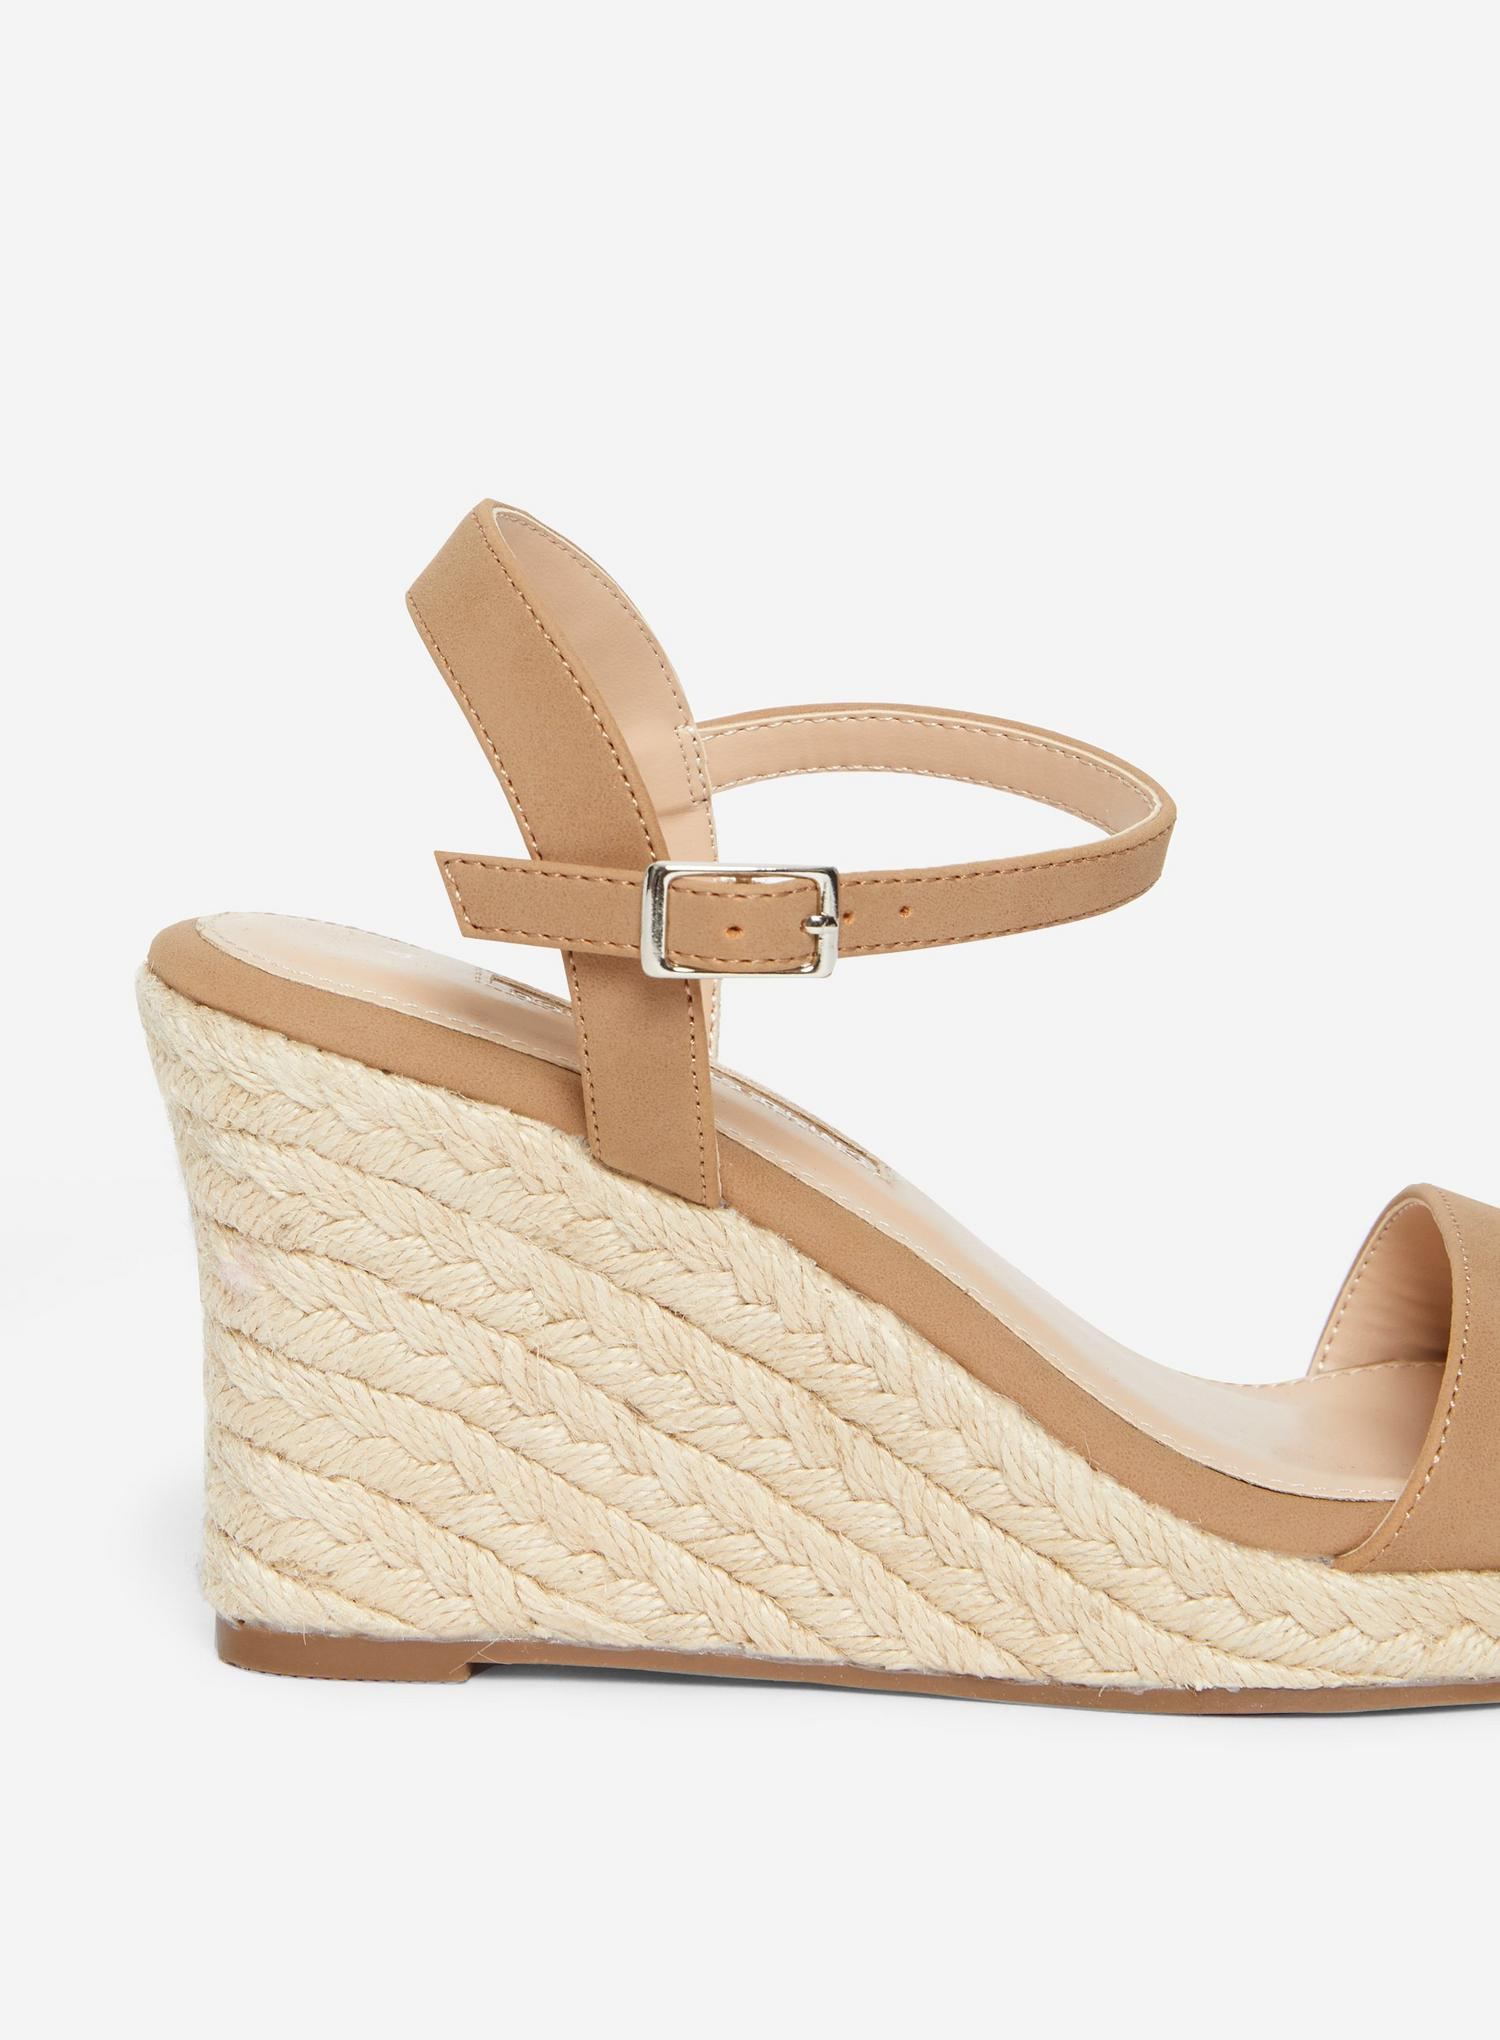 641 Taupe Ray-Ray Wedge Sandal  image number 4